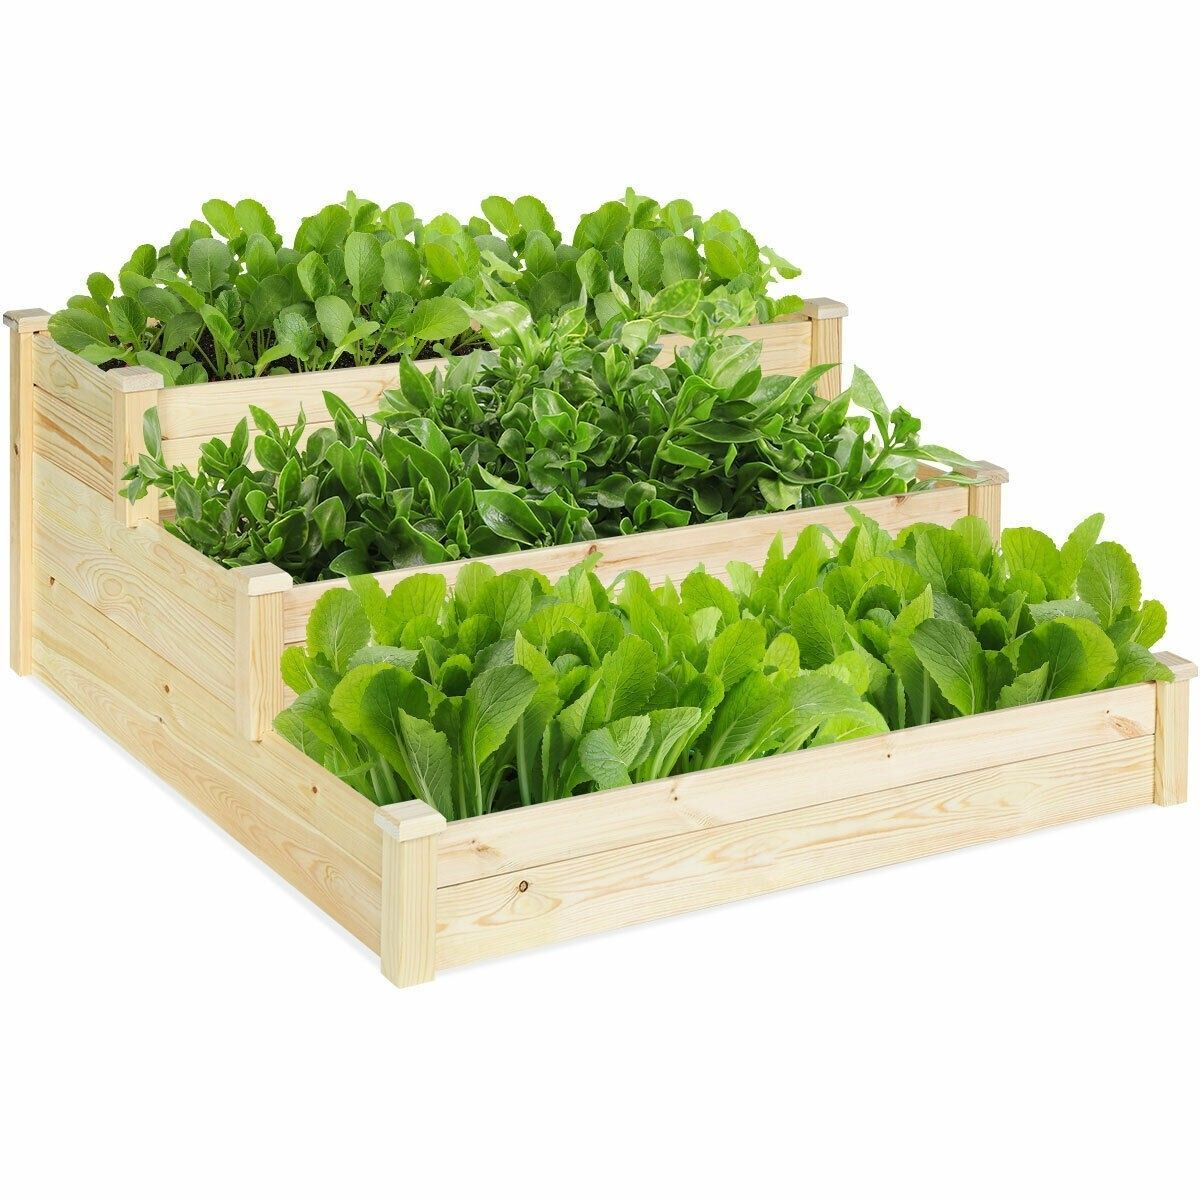 3 Tier Wooden Raised Garden Flower Vegetables Bed Woodenflowerboxes Vegetable Garden Planning Vegetable Garden Raised Beds Wooden Raised Garden Bed